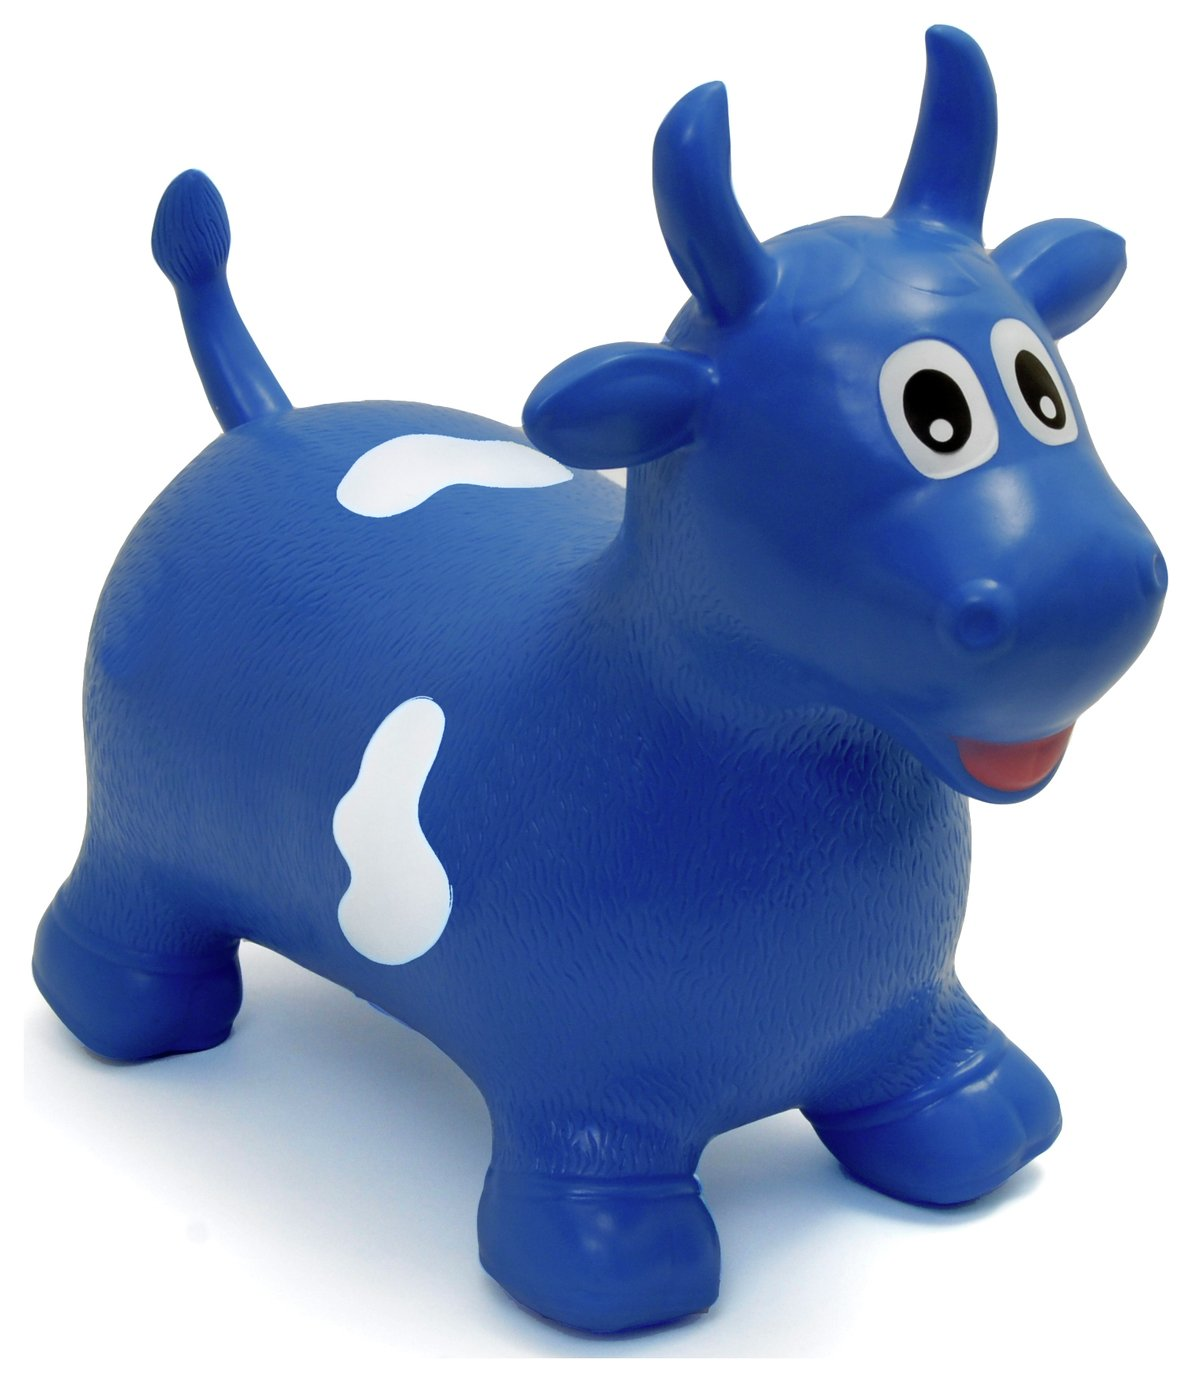 HappyHopperz Inflatable Bouncer Bull   Blue